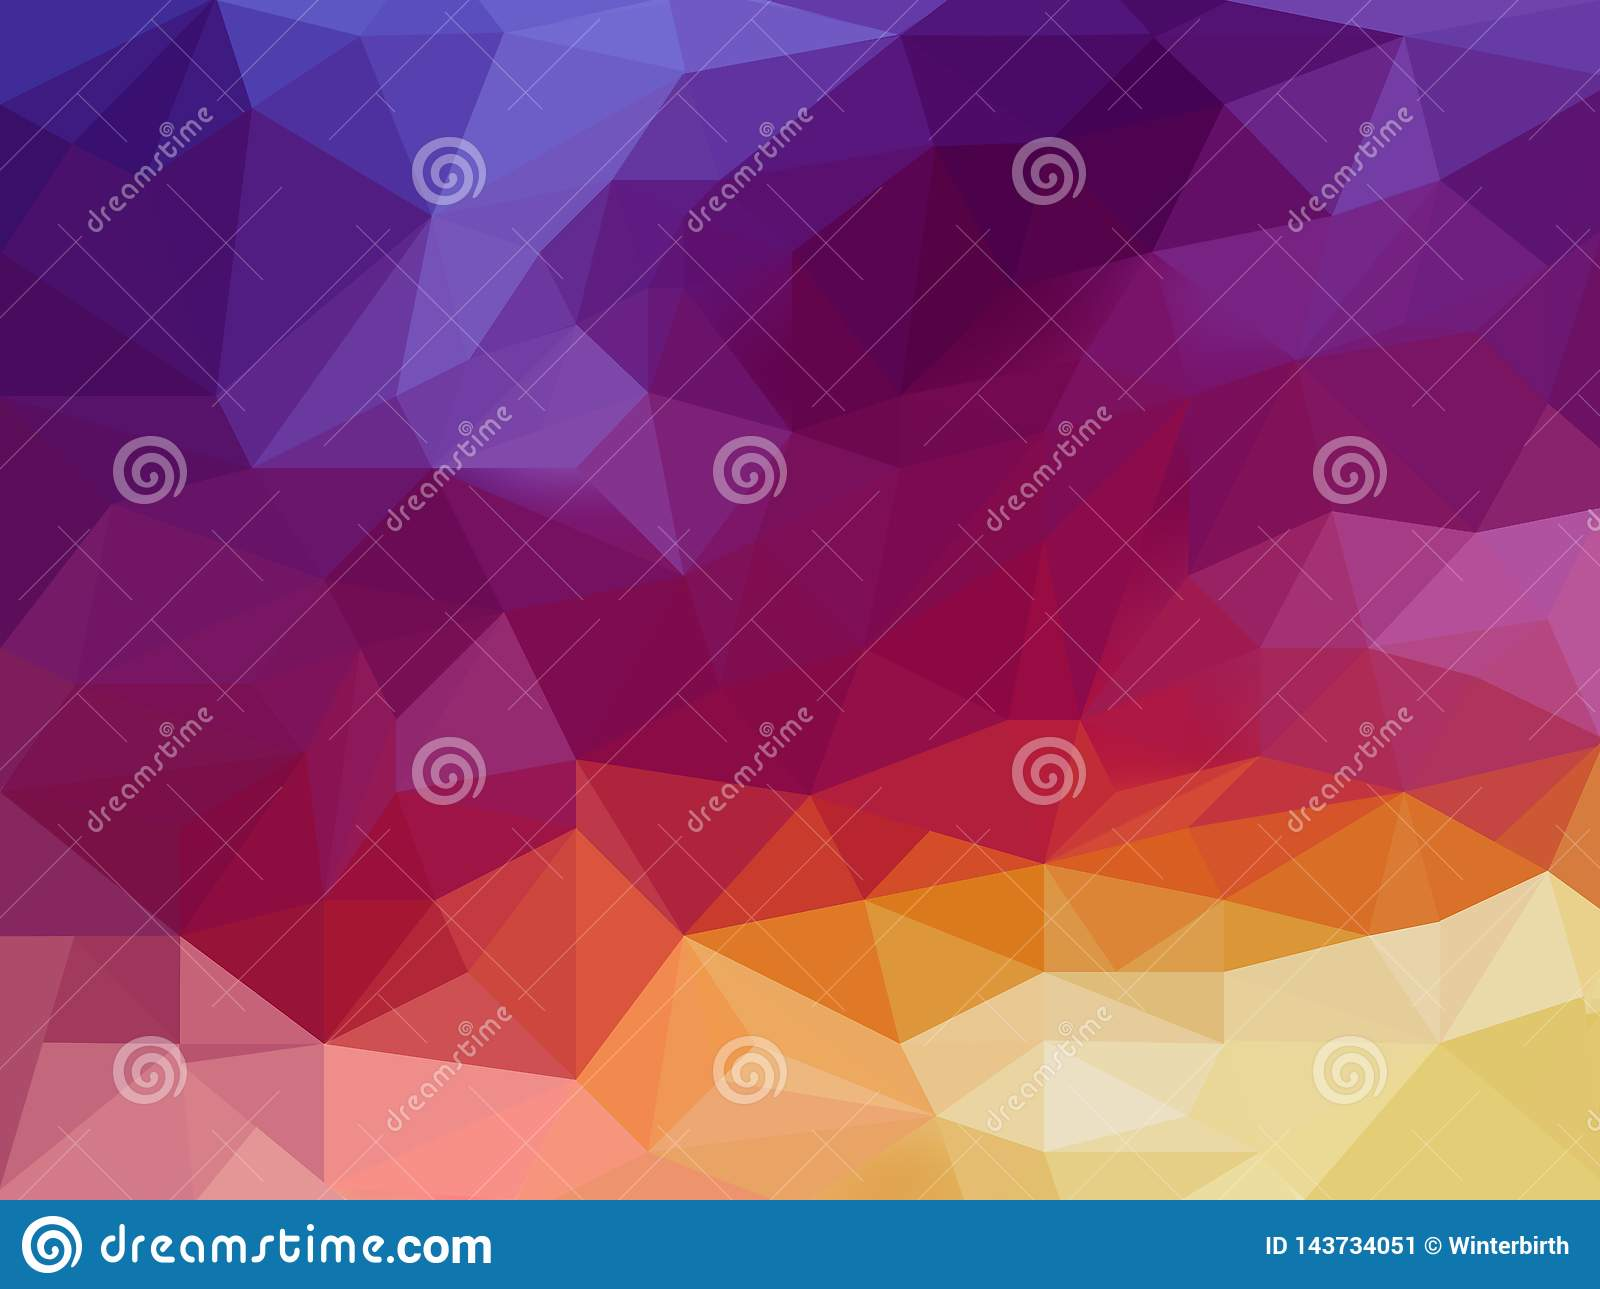 Low poly background in warm violet and orange colors